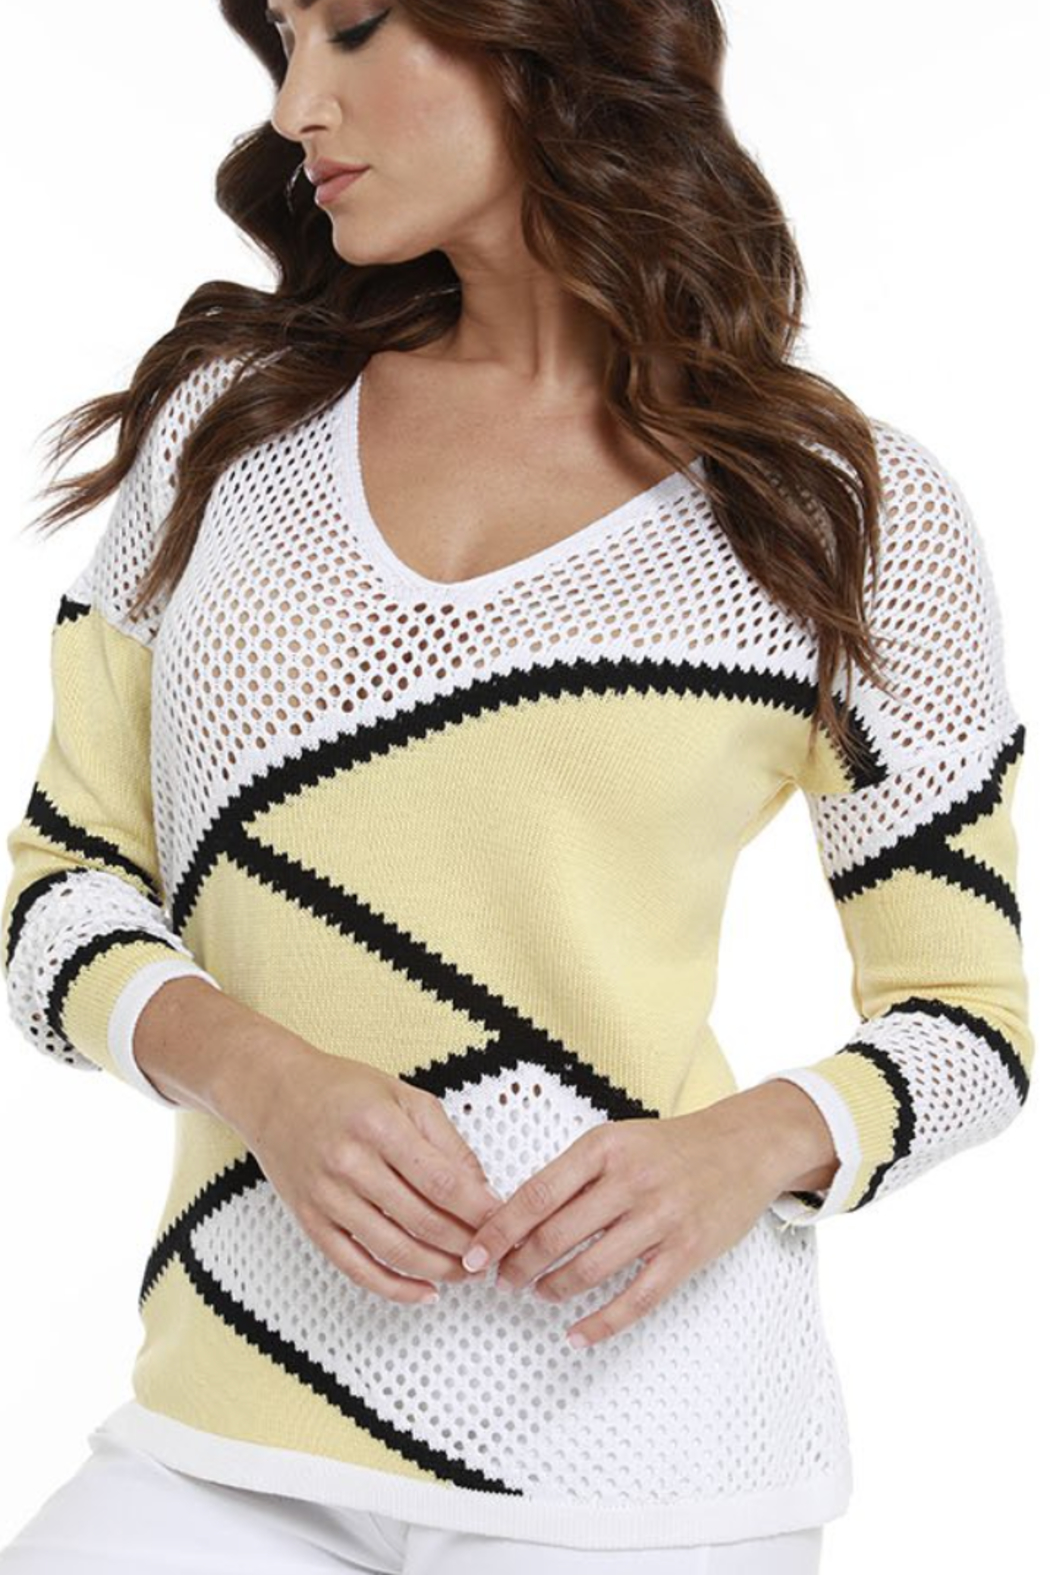 ANGEL DESIGN 8735 - Zig-Zag Netted Sweater - Front Cropped Image